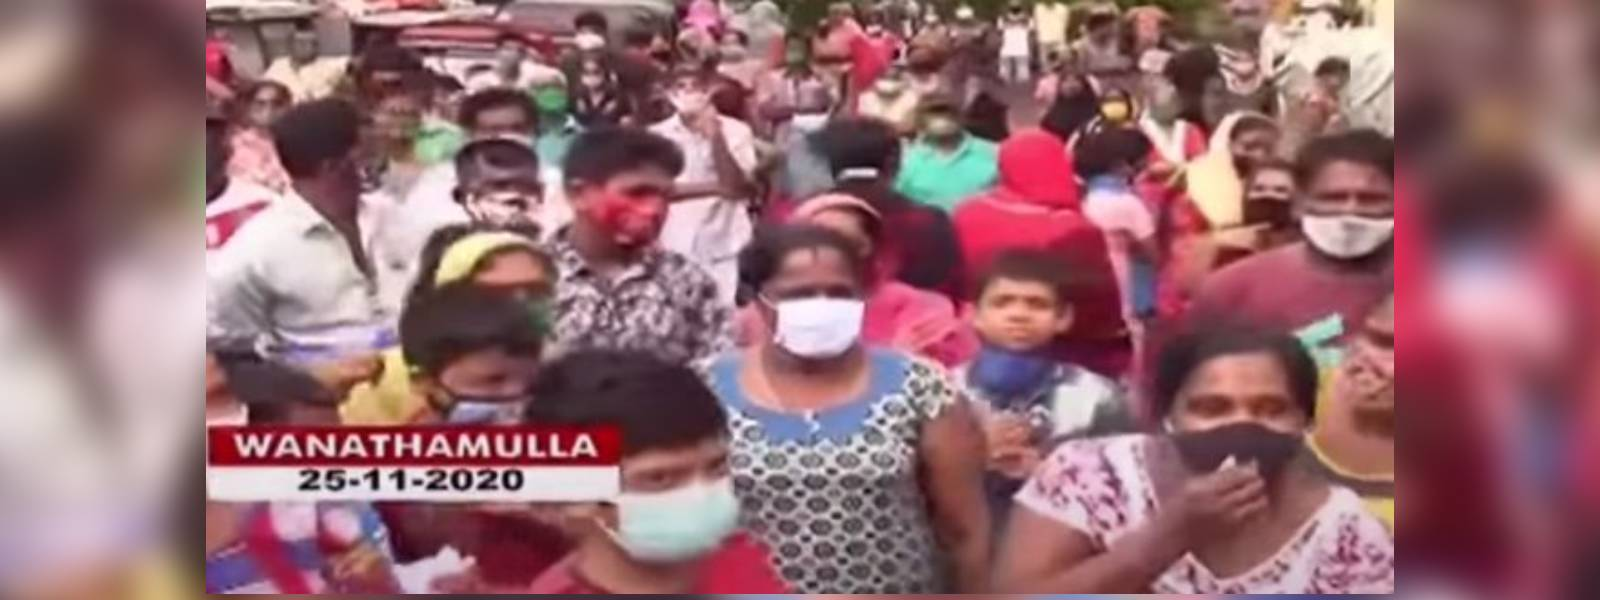 Protest in Wanathamulla demanding more relief amidst COVID-19